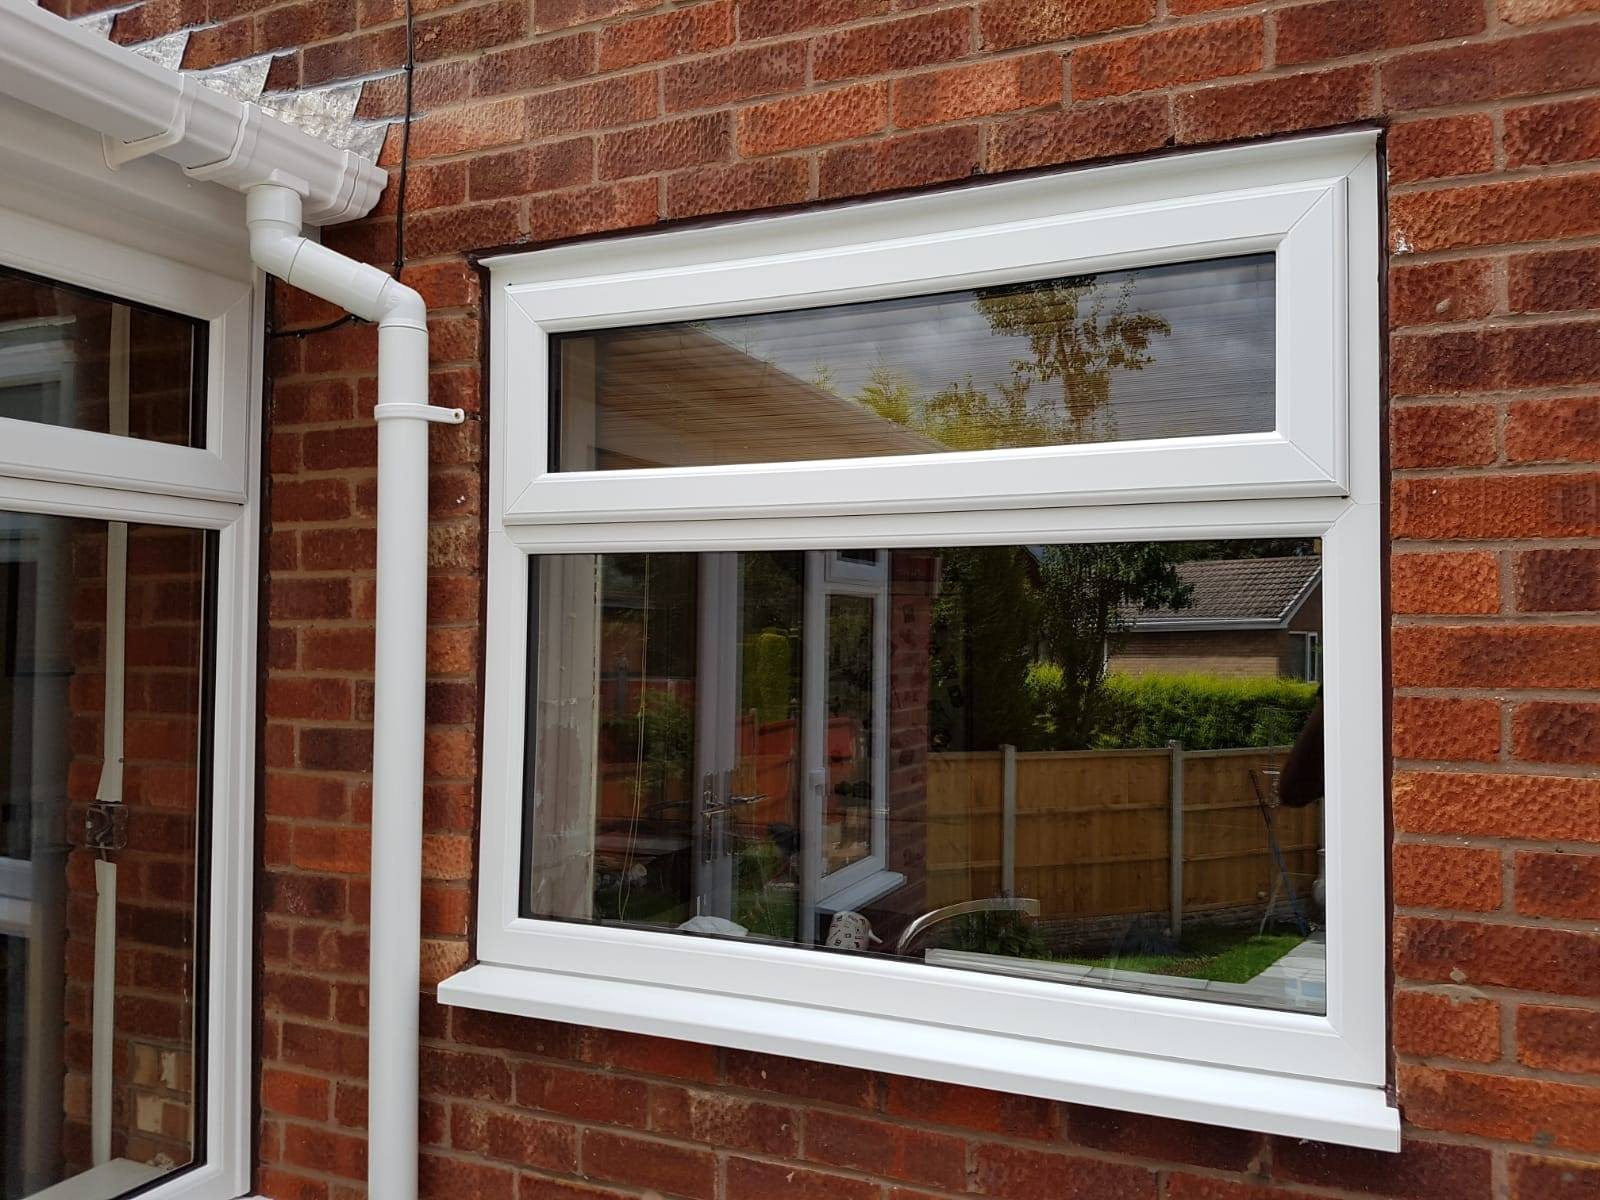 WHITE DOUBLE GLAZED WINDOW